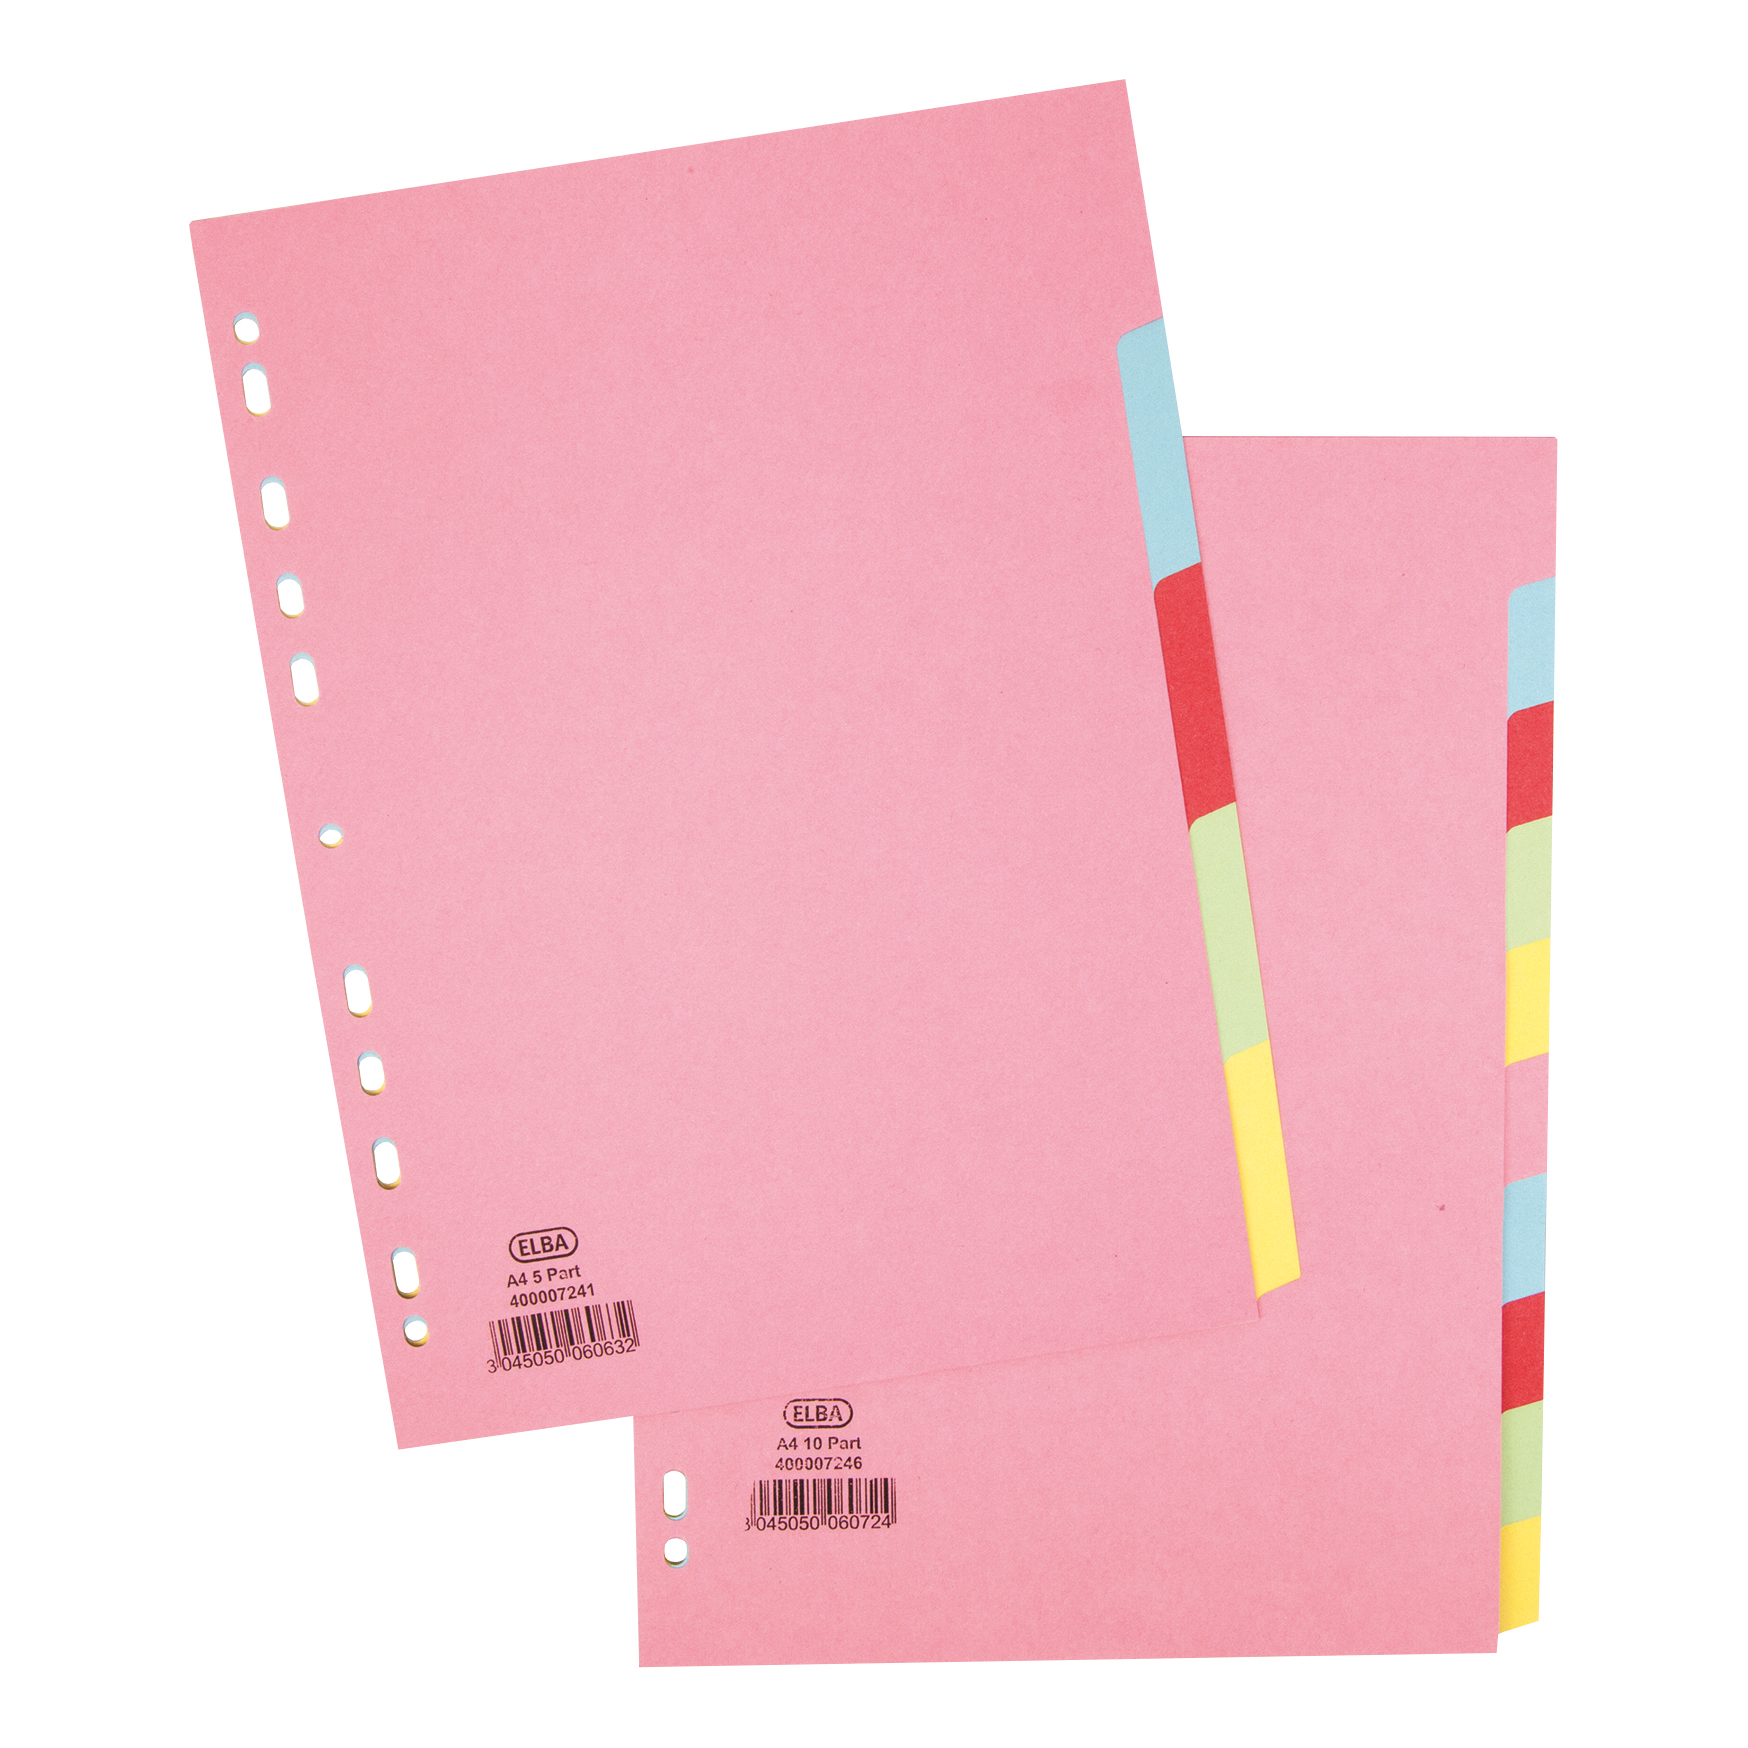 Elba Subject Dividers 5-Part Card Multipunched Recyclable 160gsm A4 Assorted Ref 400007241